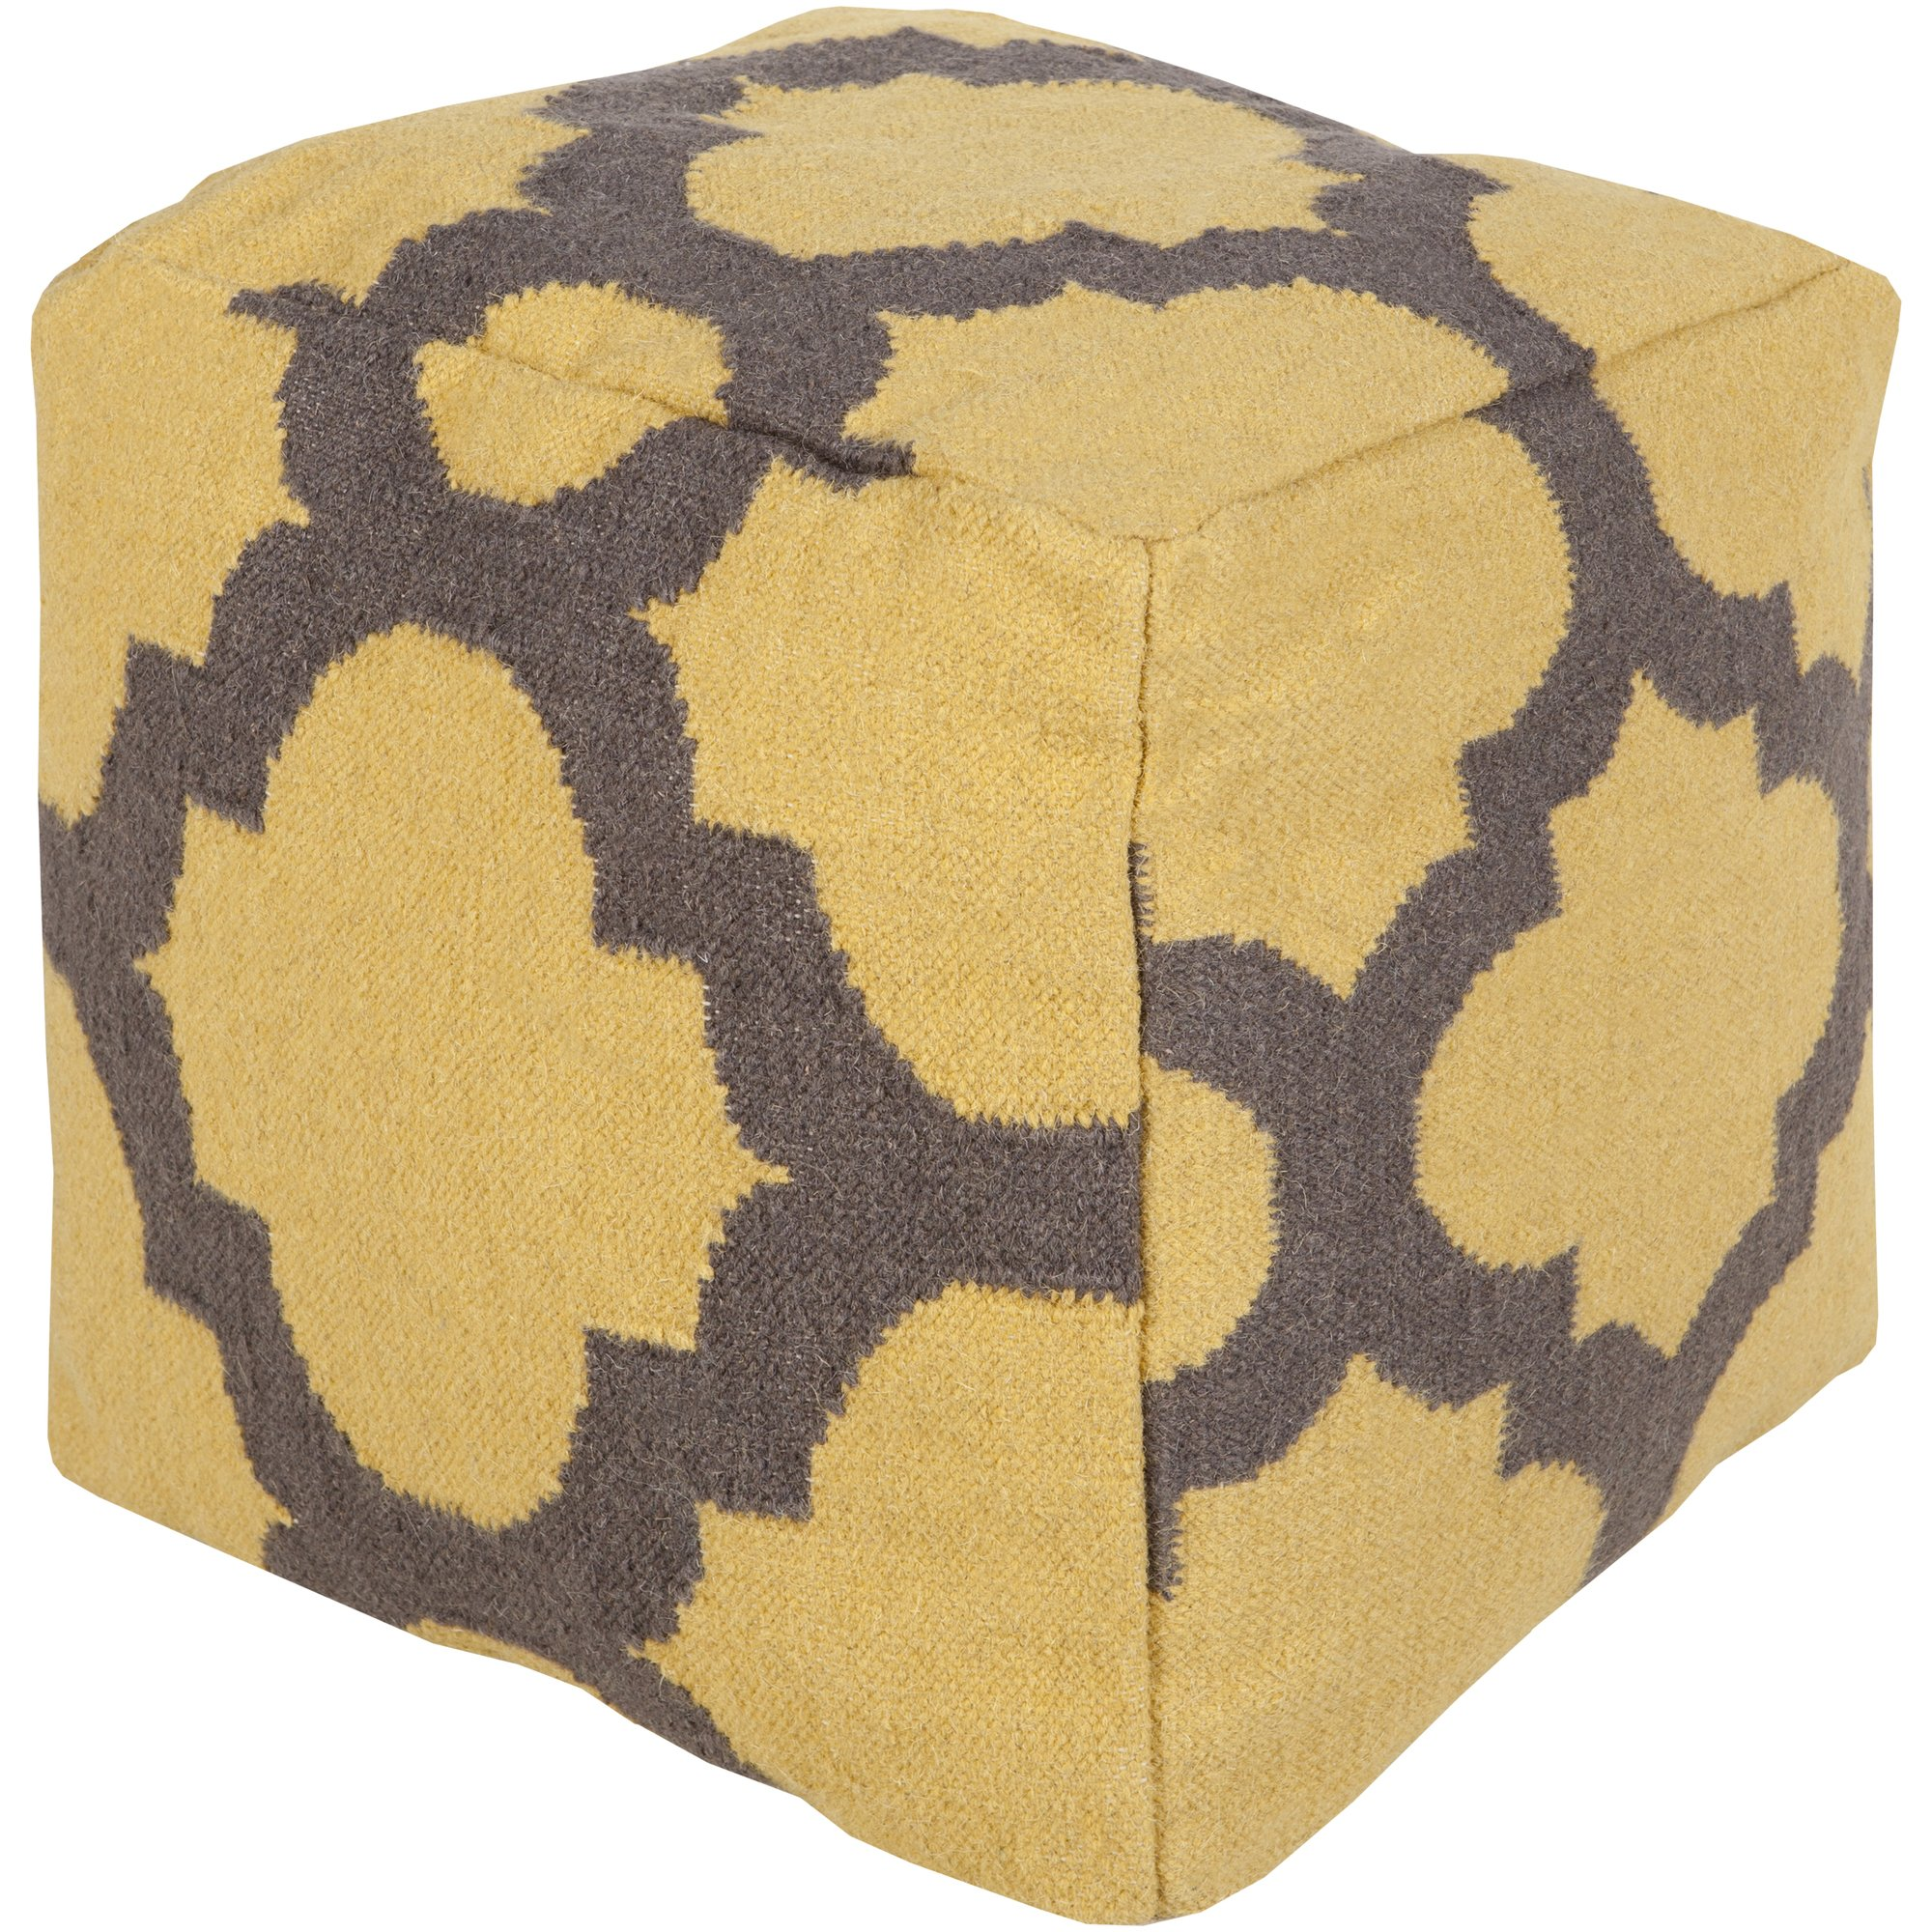 Surya 100-Percent Wool Pouf, 18-Inch by 18-Inch by 18-Inch, Sunflower/Charcoal by Surya